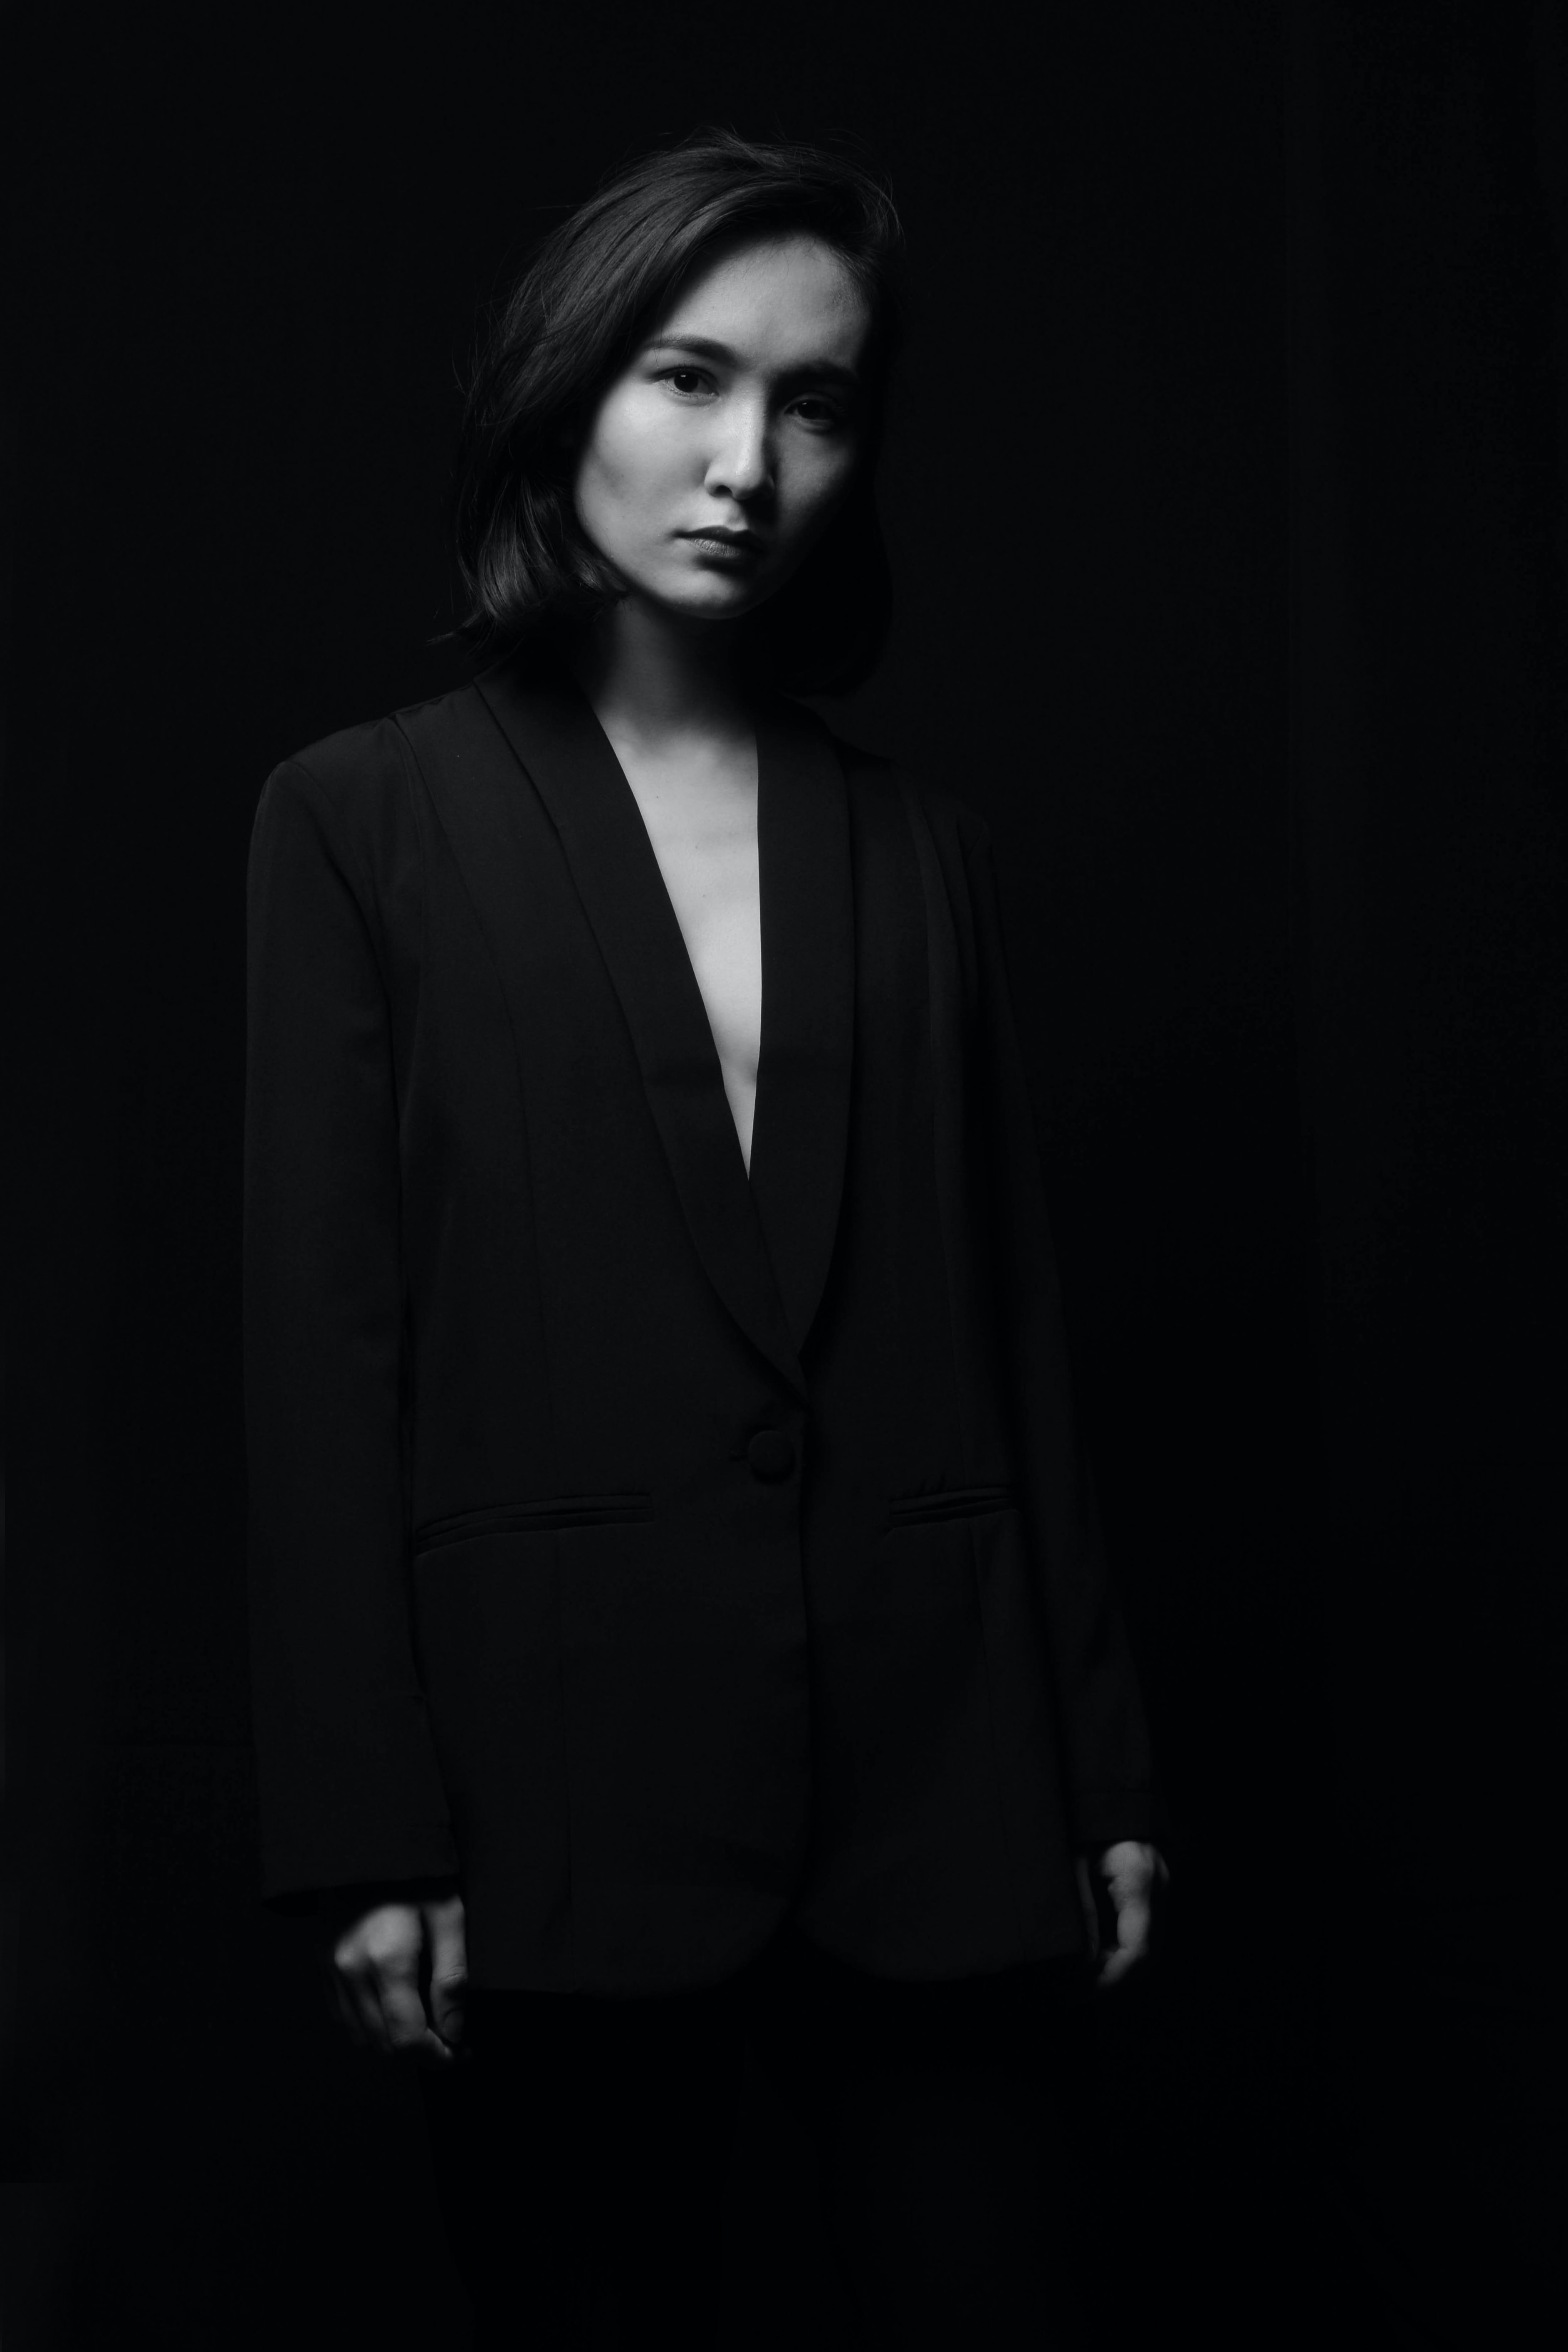 grayscale photo of woman wearing black suit